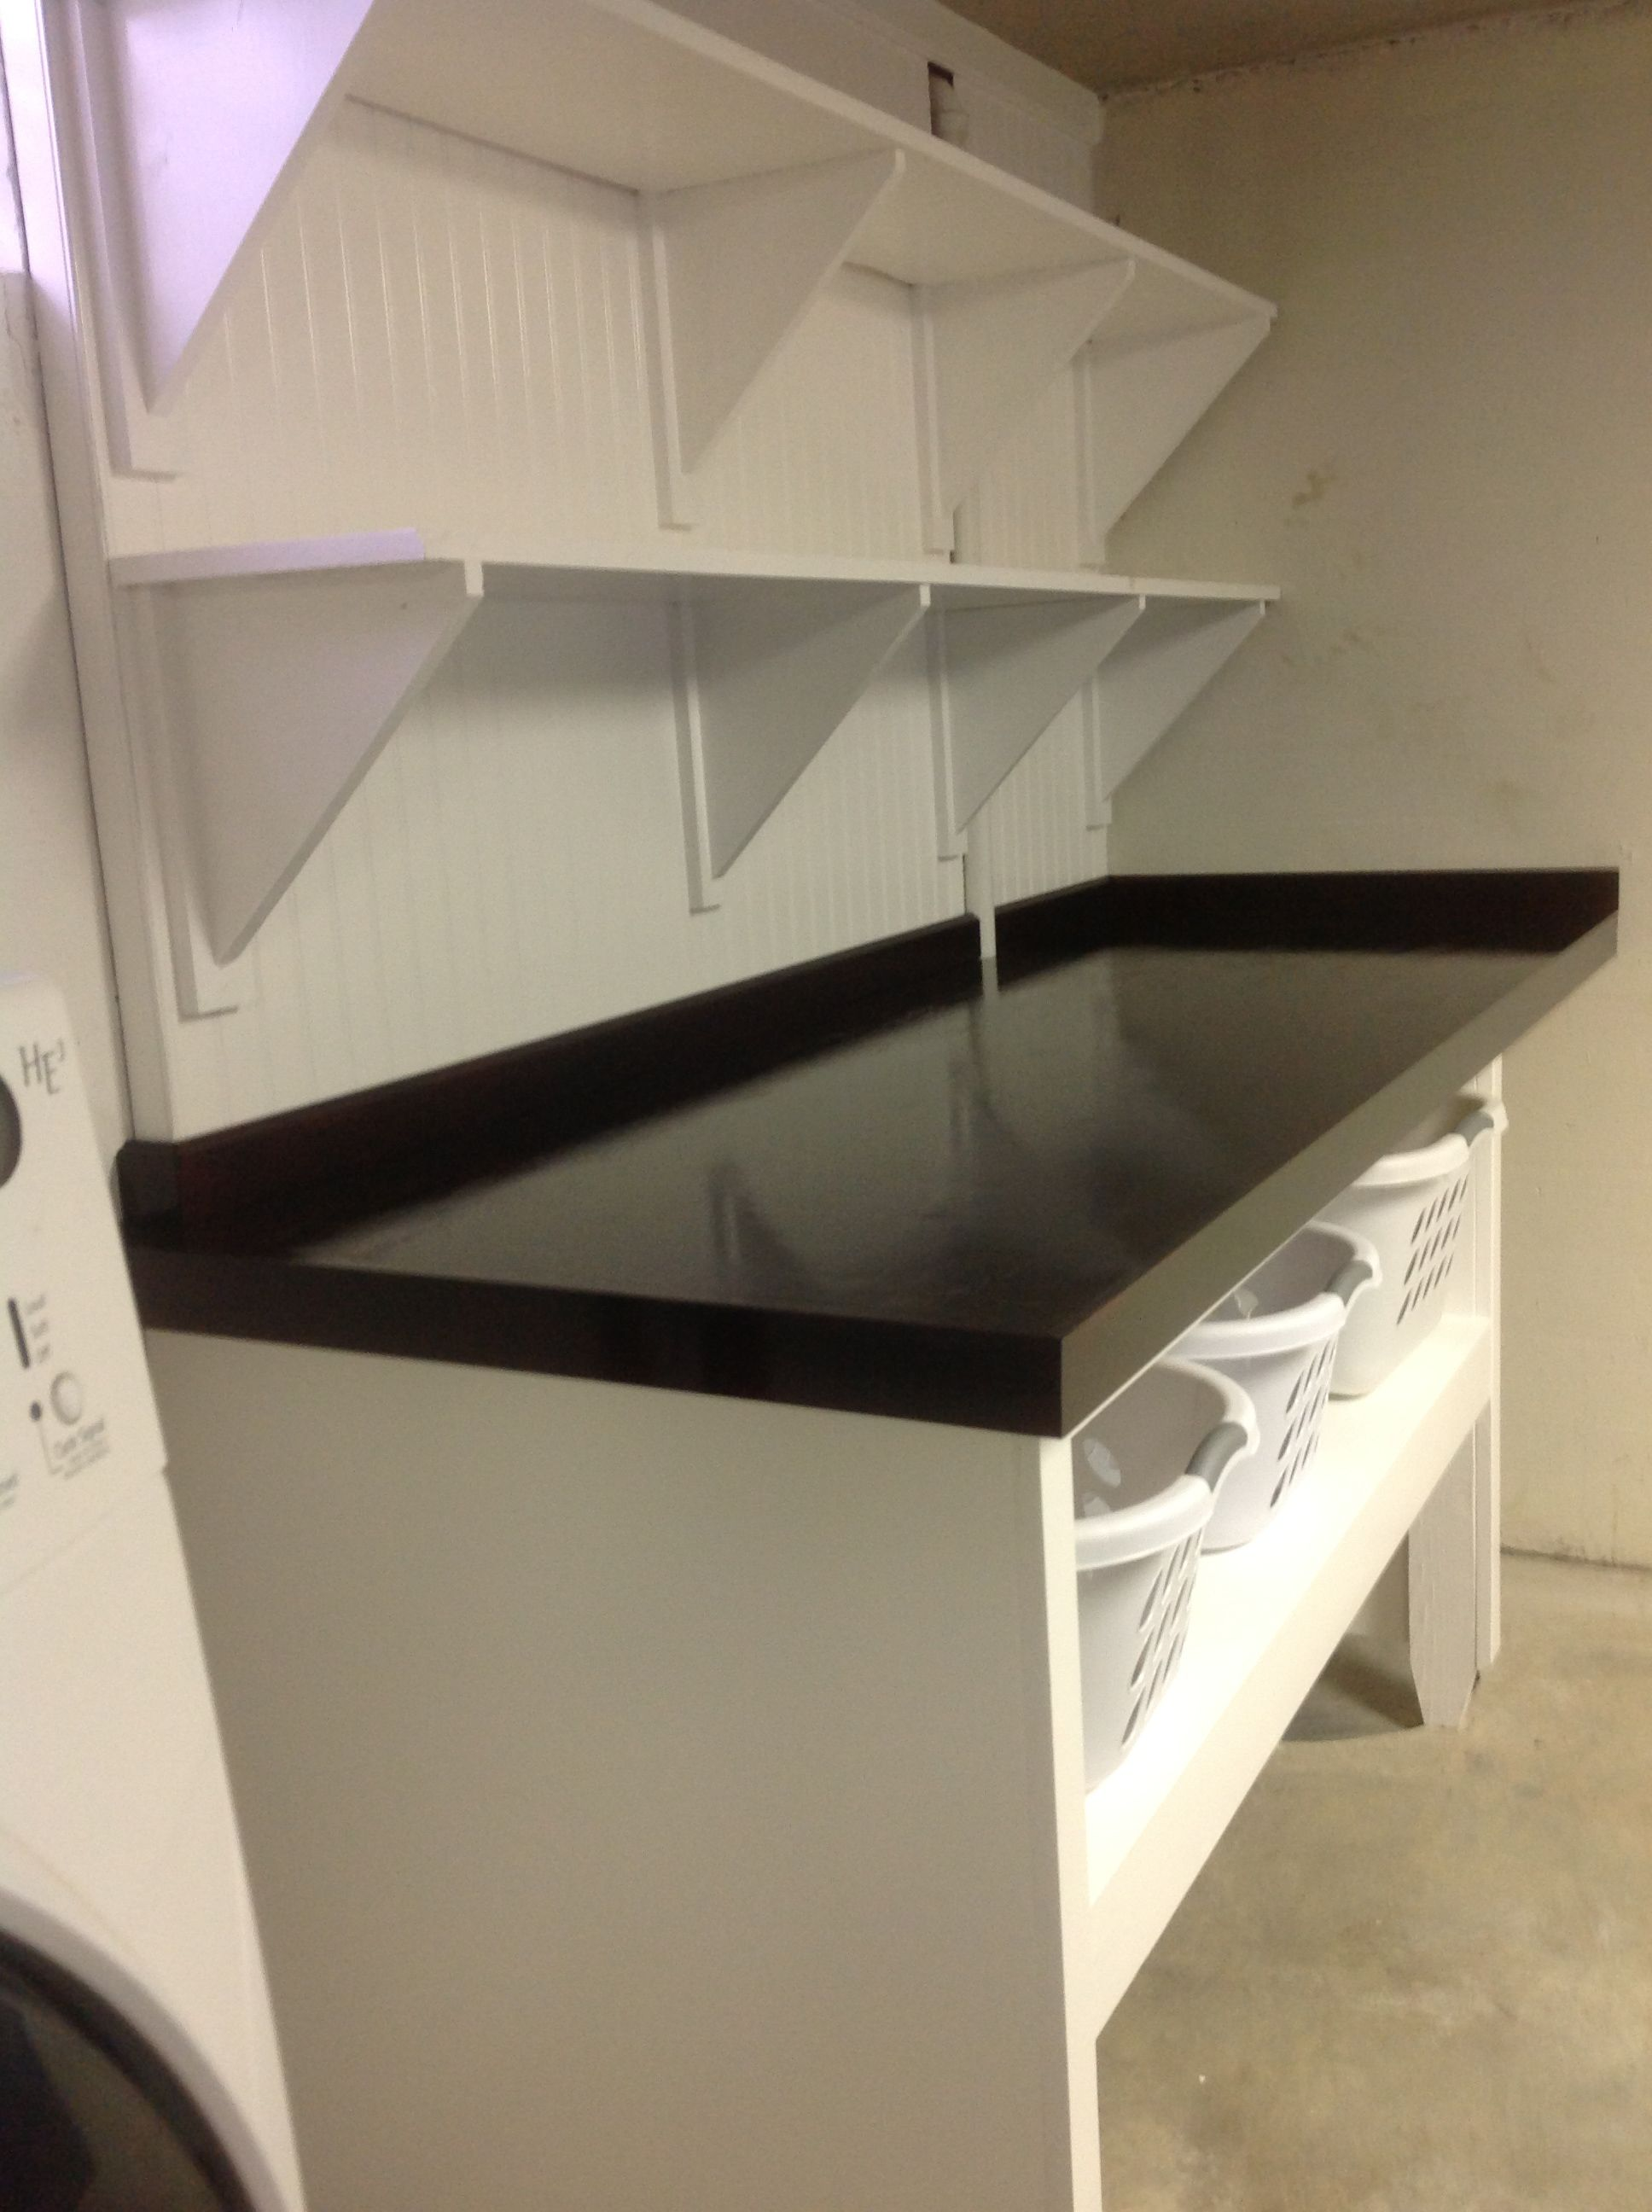 Laundry Folding Table And Shelving Laundry Room Design Laundry